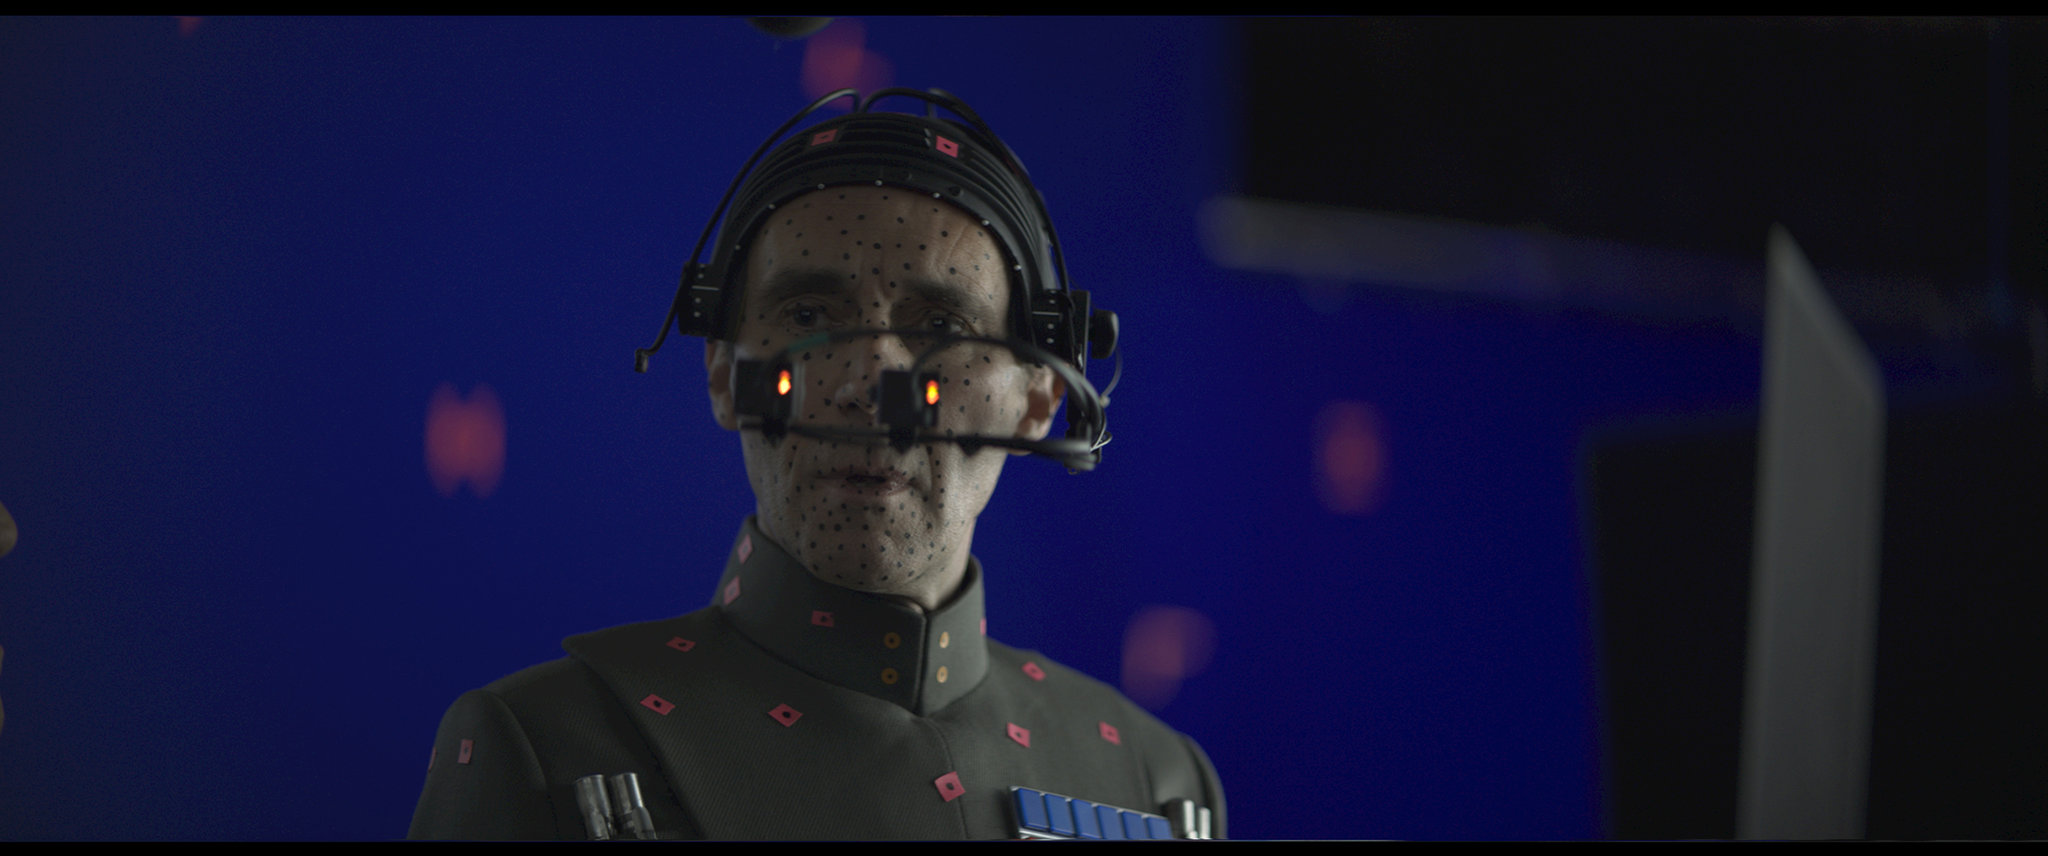 Rogue One Filmmakers Explain How They Digitally Recreated Two - Scenes original star wars created cgi